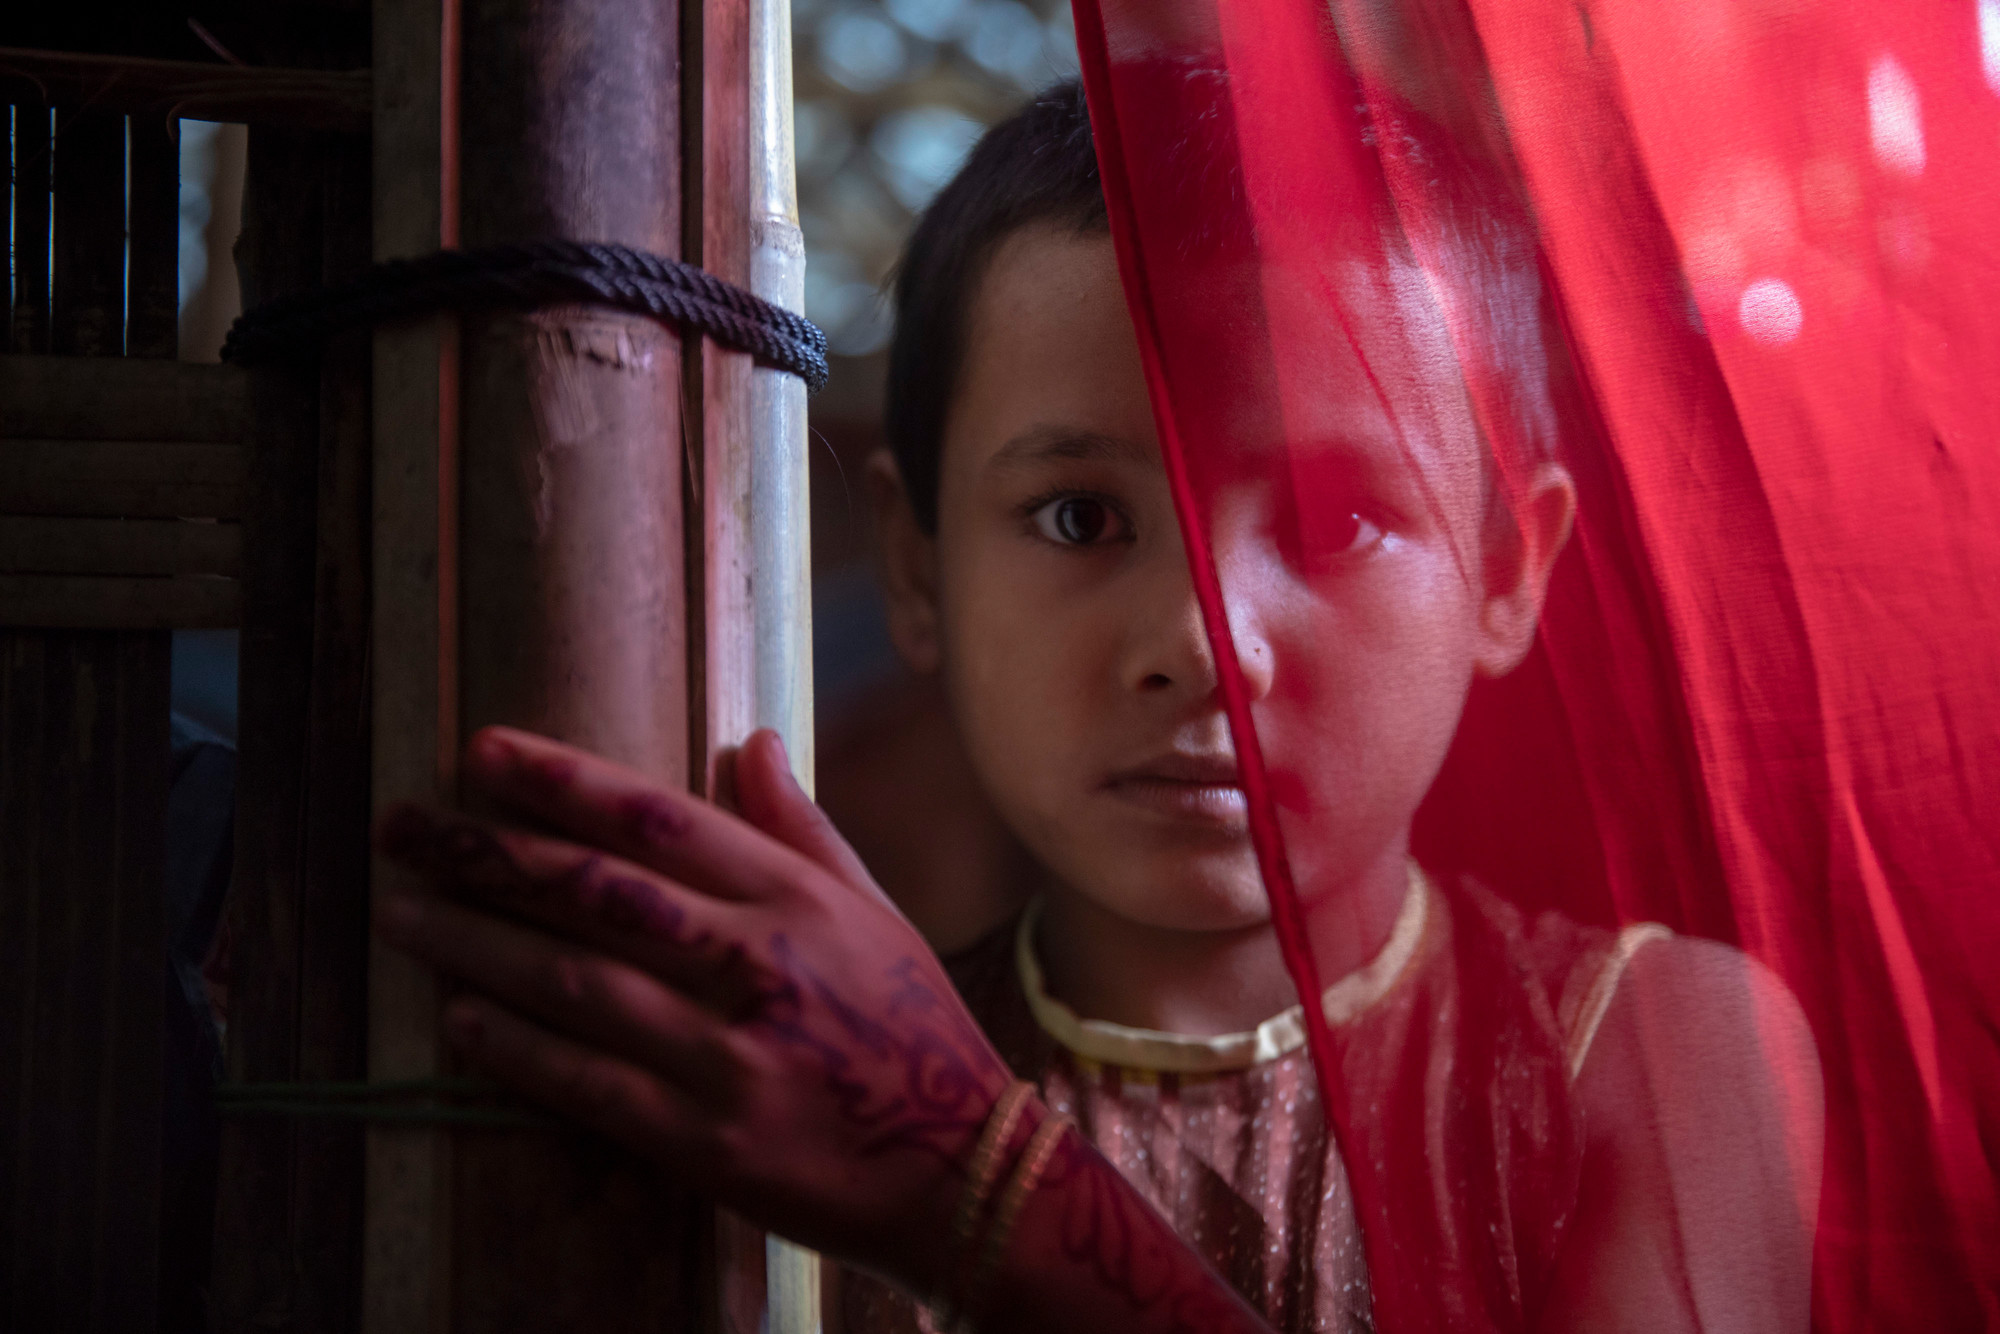 A girl in a temporary shelter looks forward while a piece of red fabric obscures half of her face.